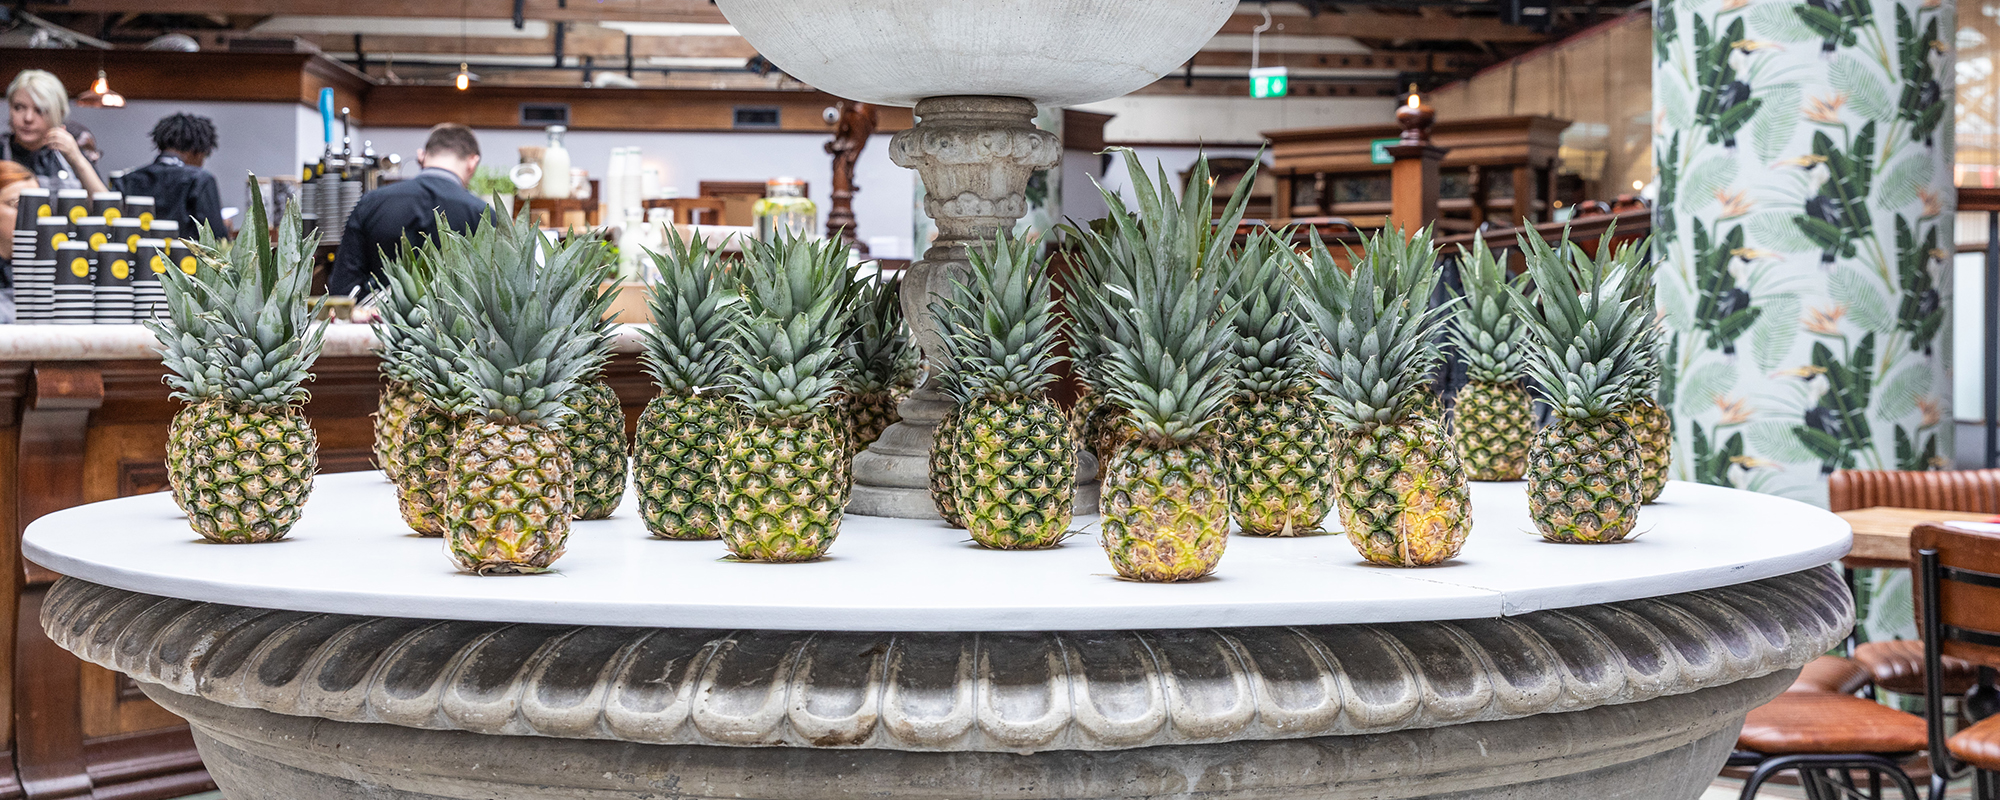 The Pineapples awards take place at Tobacco Dock, East London